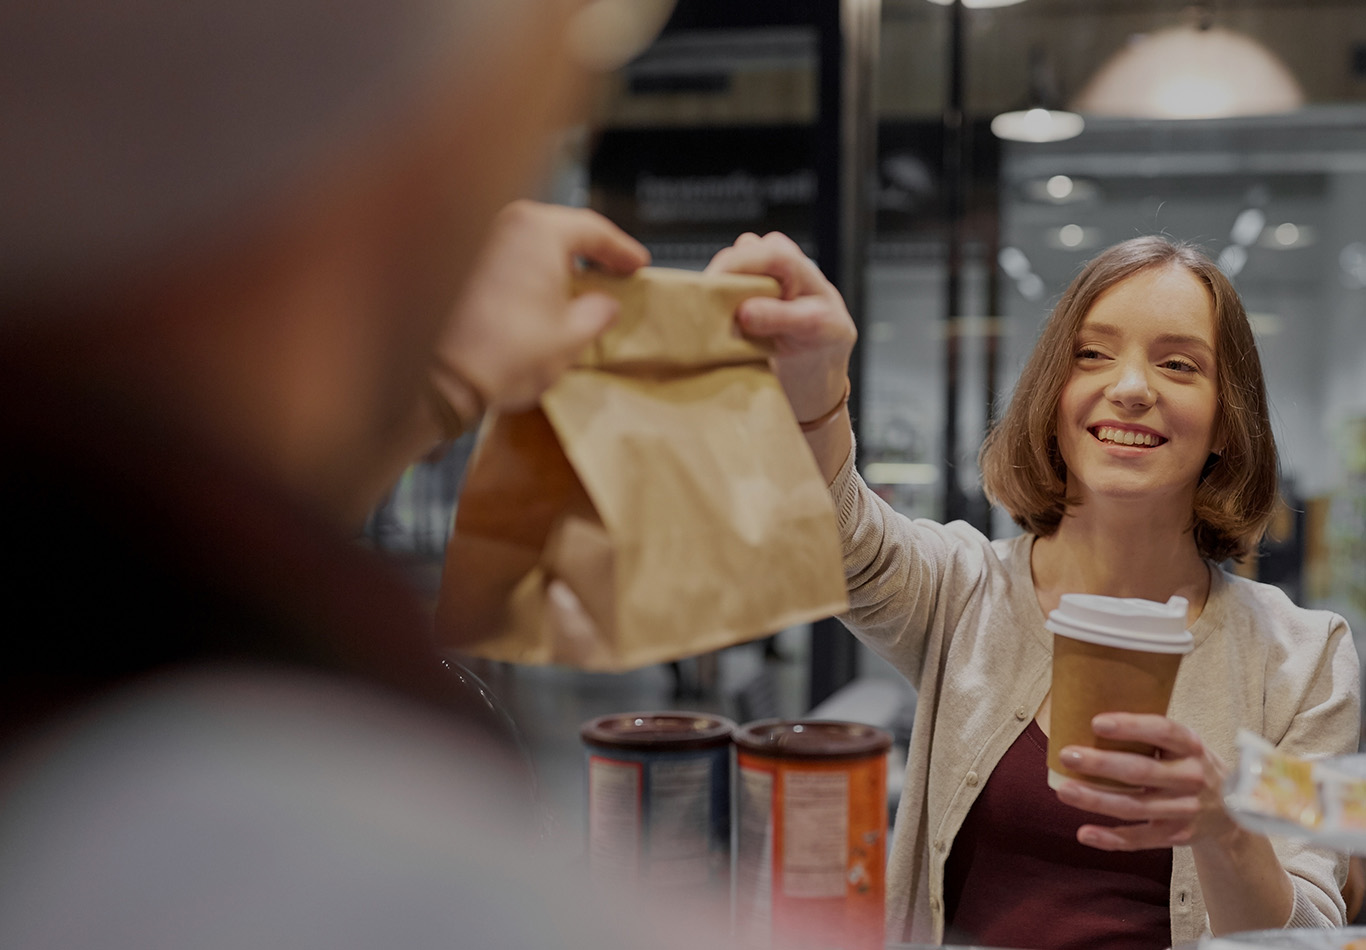 A woman holding a coffee cup is receiving a bag from another person